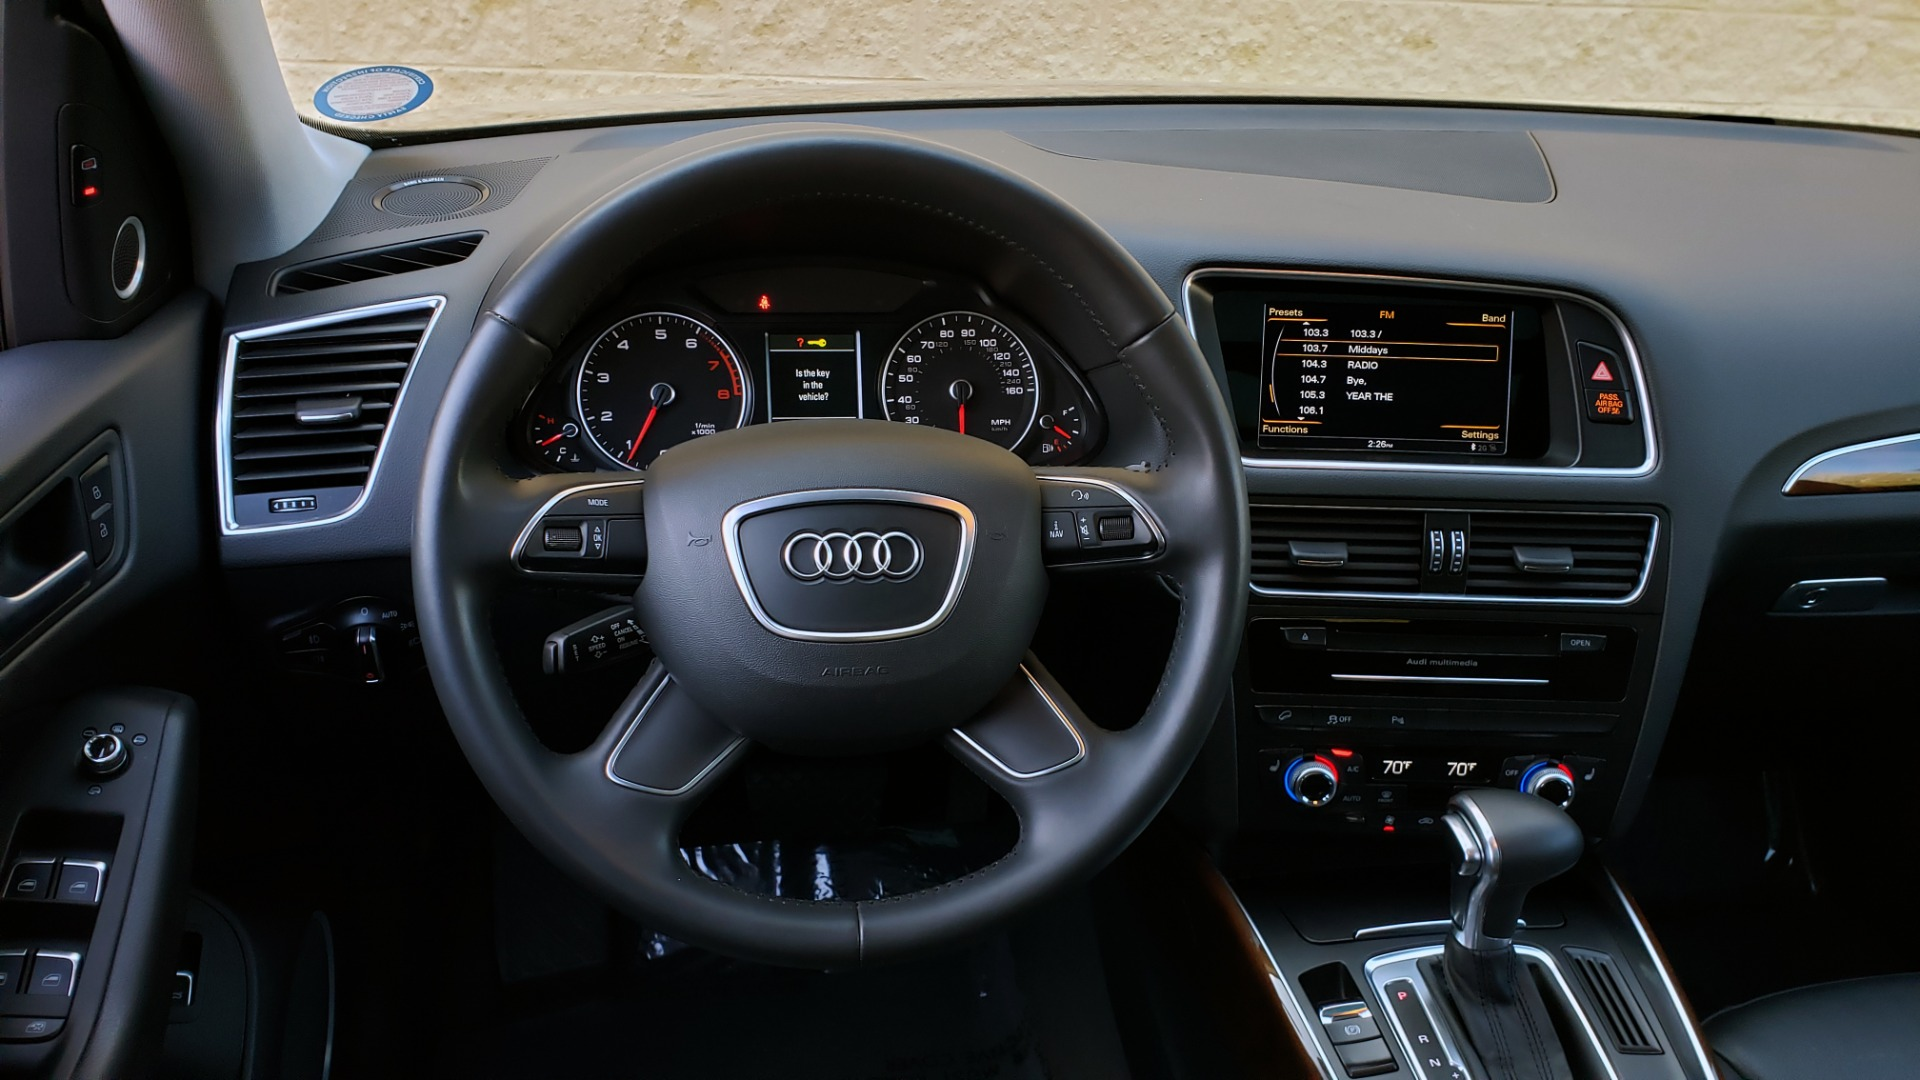 Used 2017 Audi Q5 PREMIUM PLUS / TECH / NAV / PANO / REARVIEW / B&O SND for sale Sold at Formula Imports in Charlotte NC 28227 36